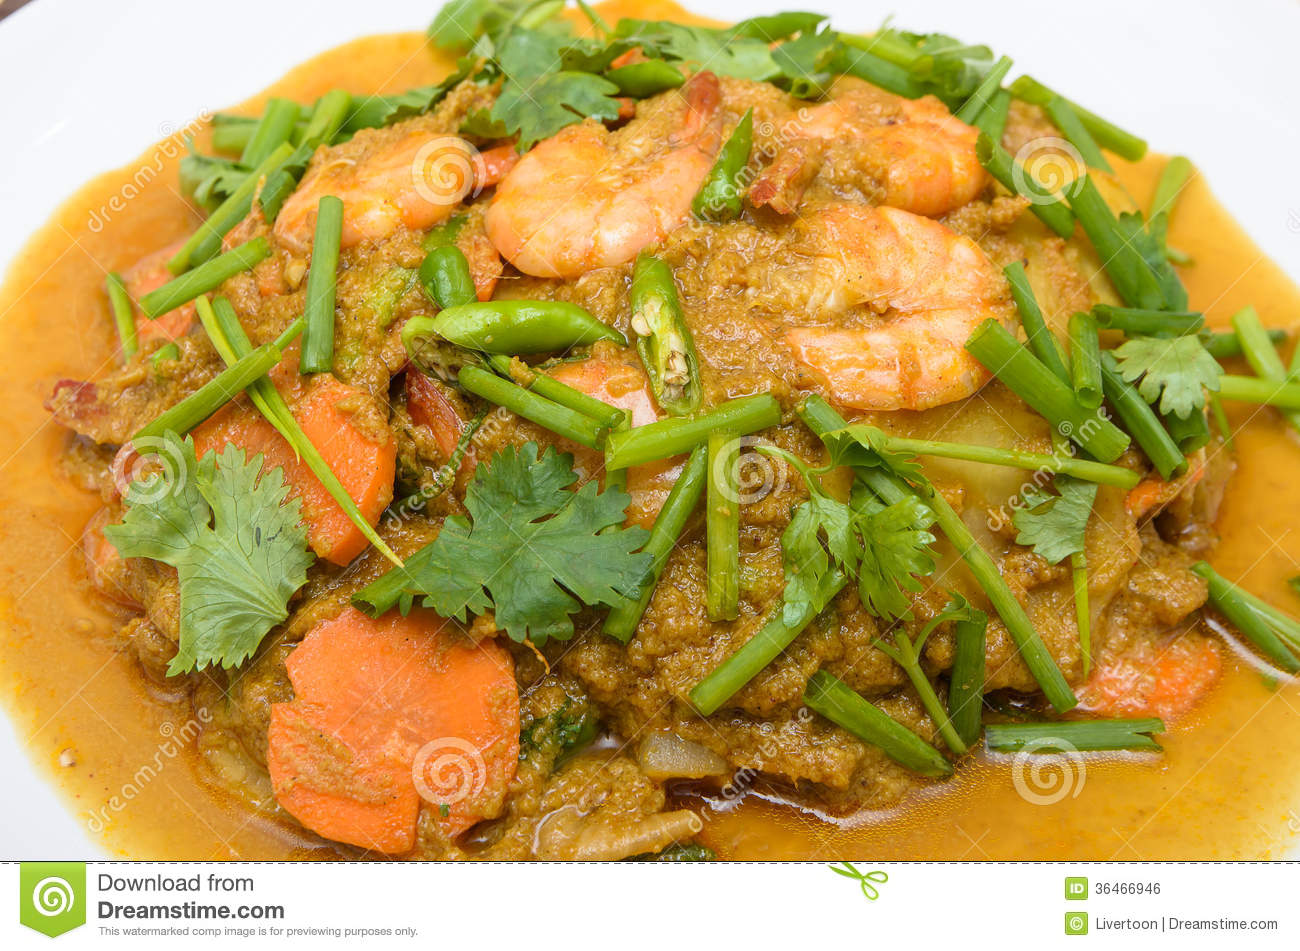 how to make curry shrimp with curry powder